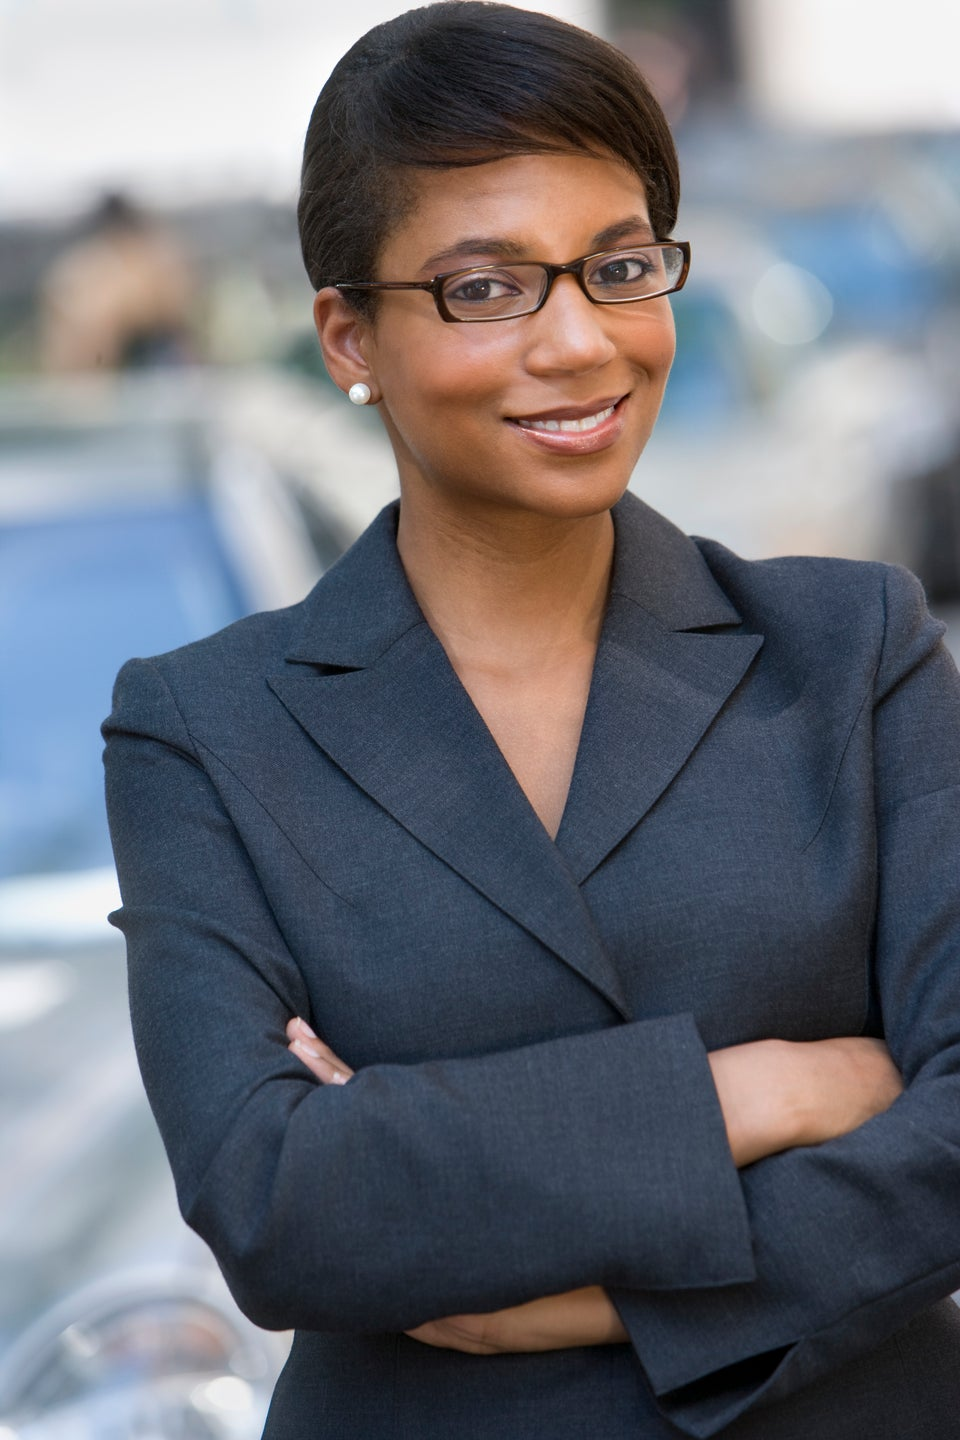 Tanisha's Tips: What to Wear to the Interview?